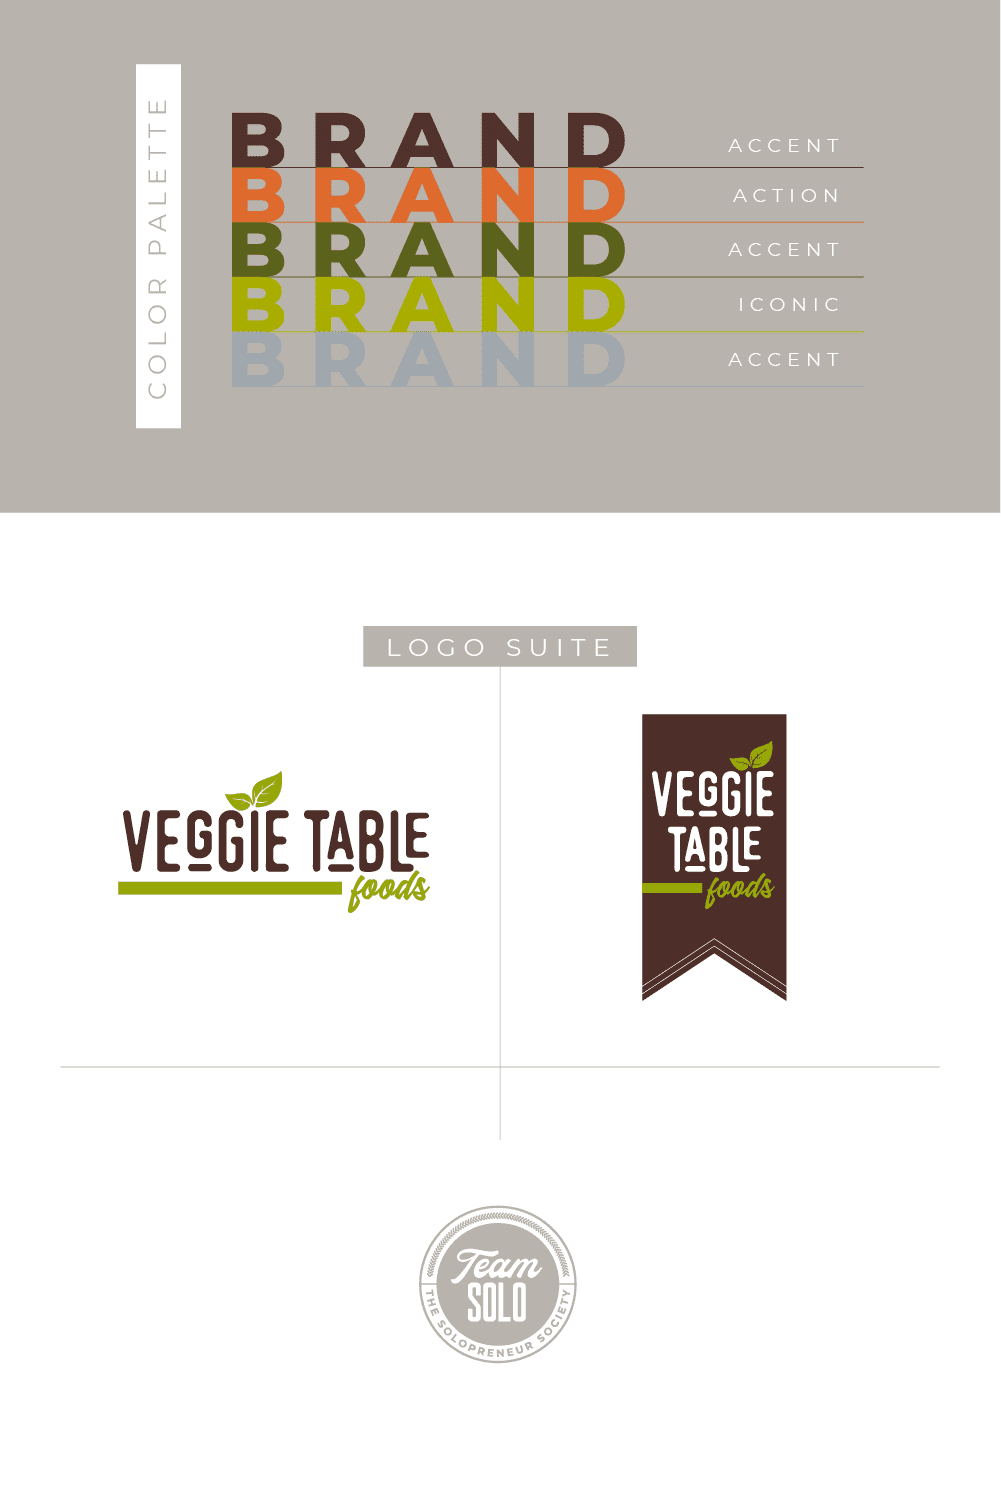 Veggie Table Foods Logo Suite Design